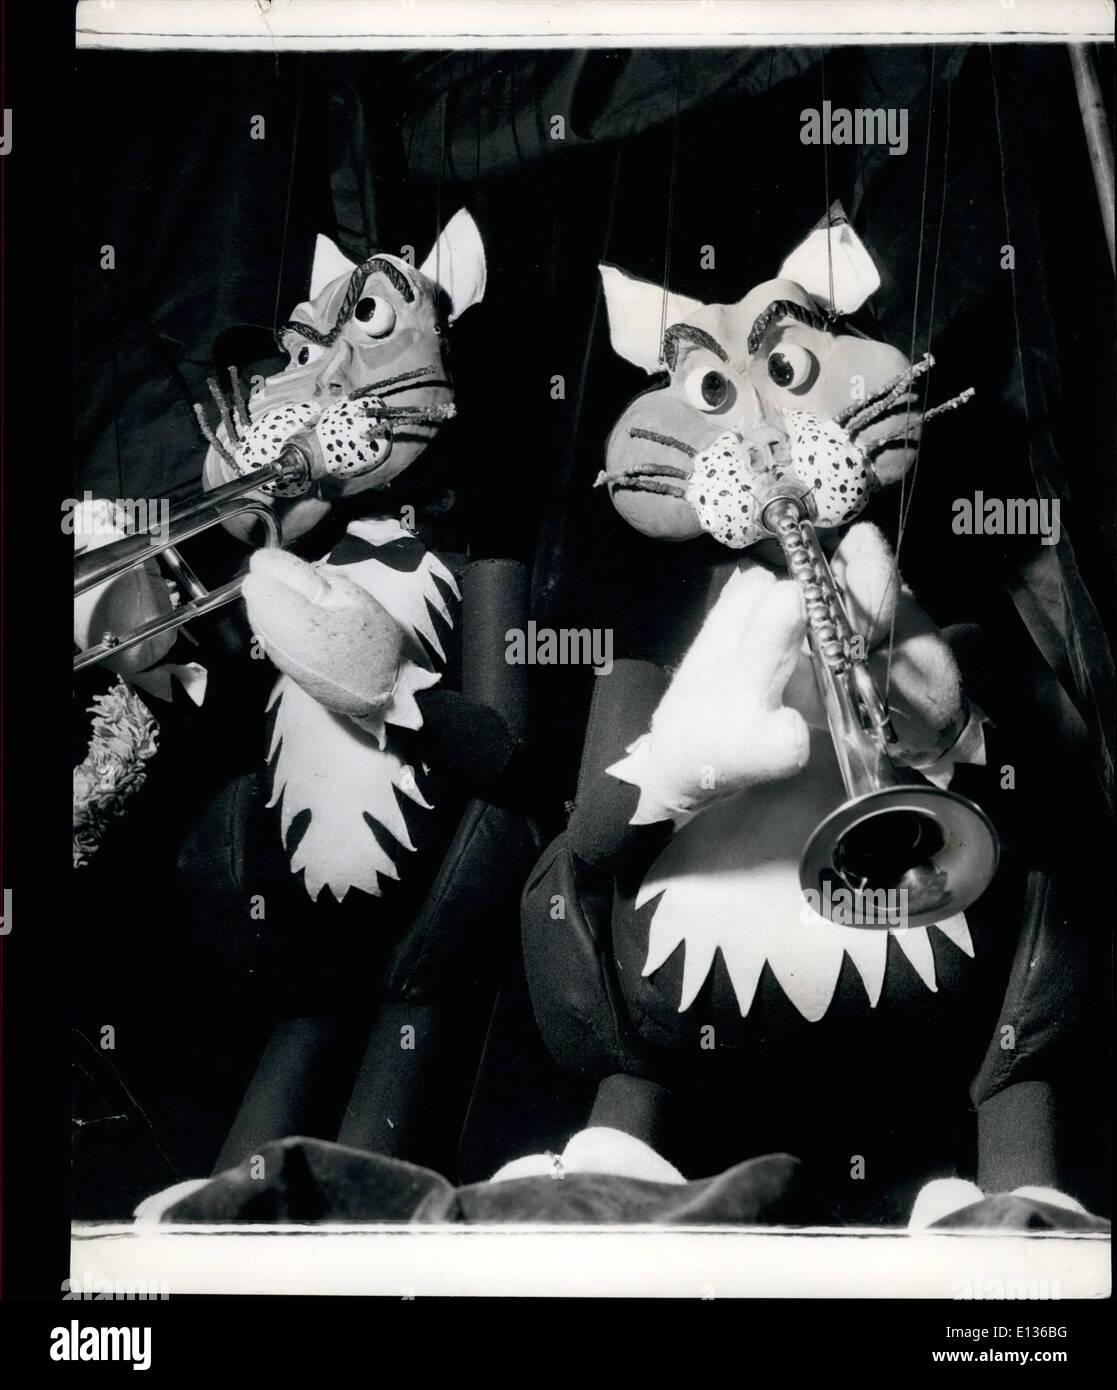 Feb. 28, 2012 - Musical Cats N Strings: Making their first appearance at the Palladium are two Australians who have a novel Puppet act. They are husband and wife, Paul and Peta Page, and their clever act has proved a great success with audiences. They have four cat puppets all playing different musical instruments, ''Fats'' at the piano, ''Marmalade'' on the clarjonet, ''Tim'' on the trombone and ''Tom'' on the trumpet, a musical quartette suitably named ''The Hepcats'' - Stock Image